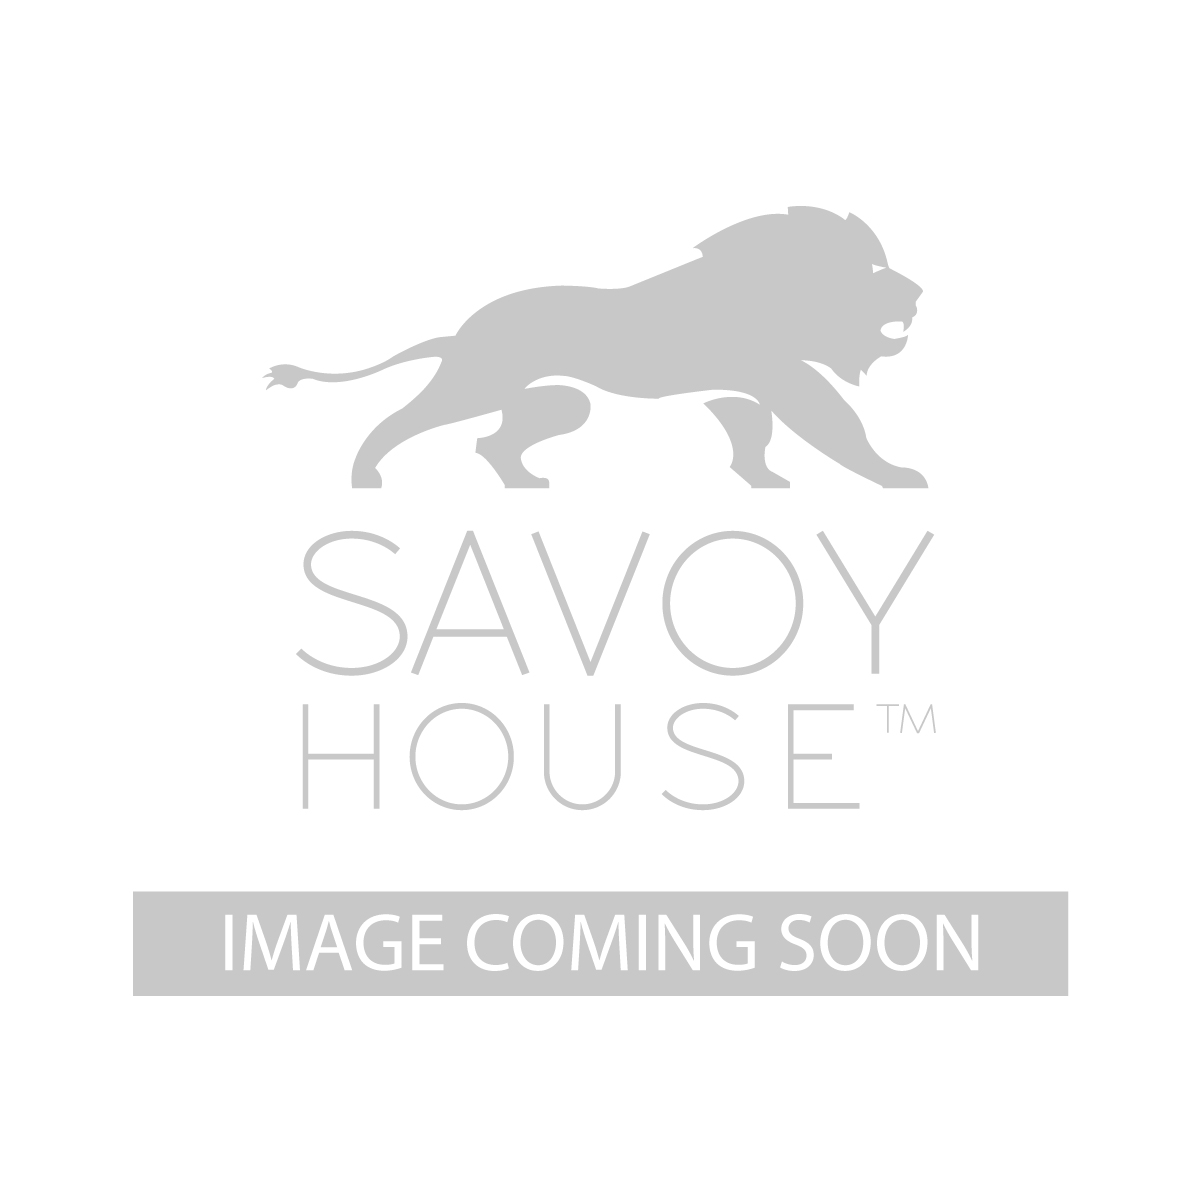 1 7152 12 272 filament 12 light chandelier by savoy house for Www savoyhouse com